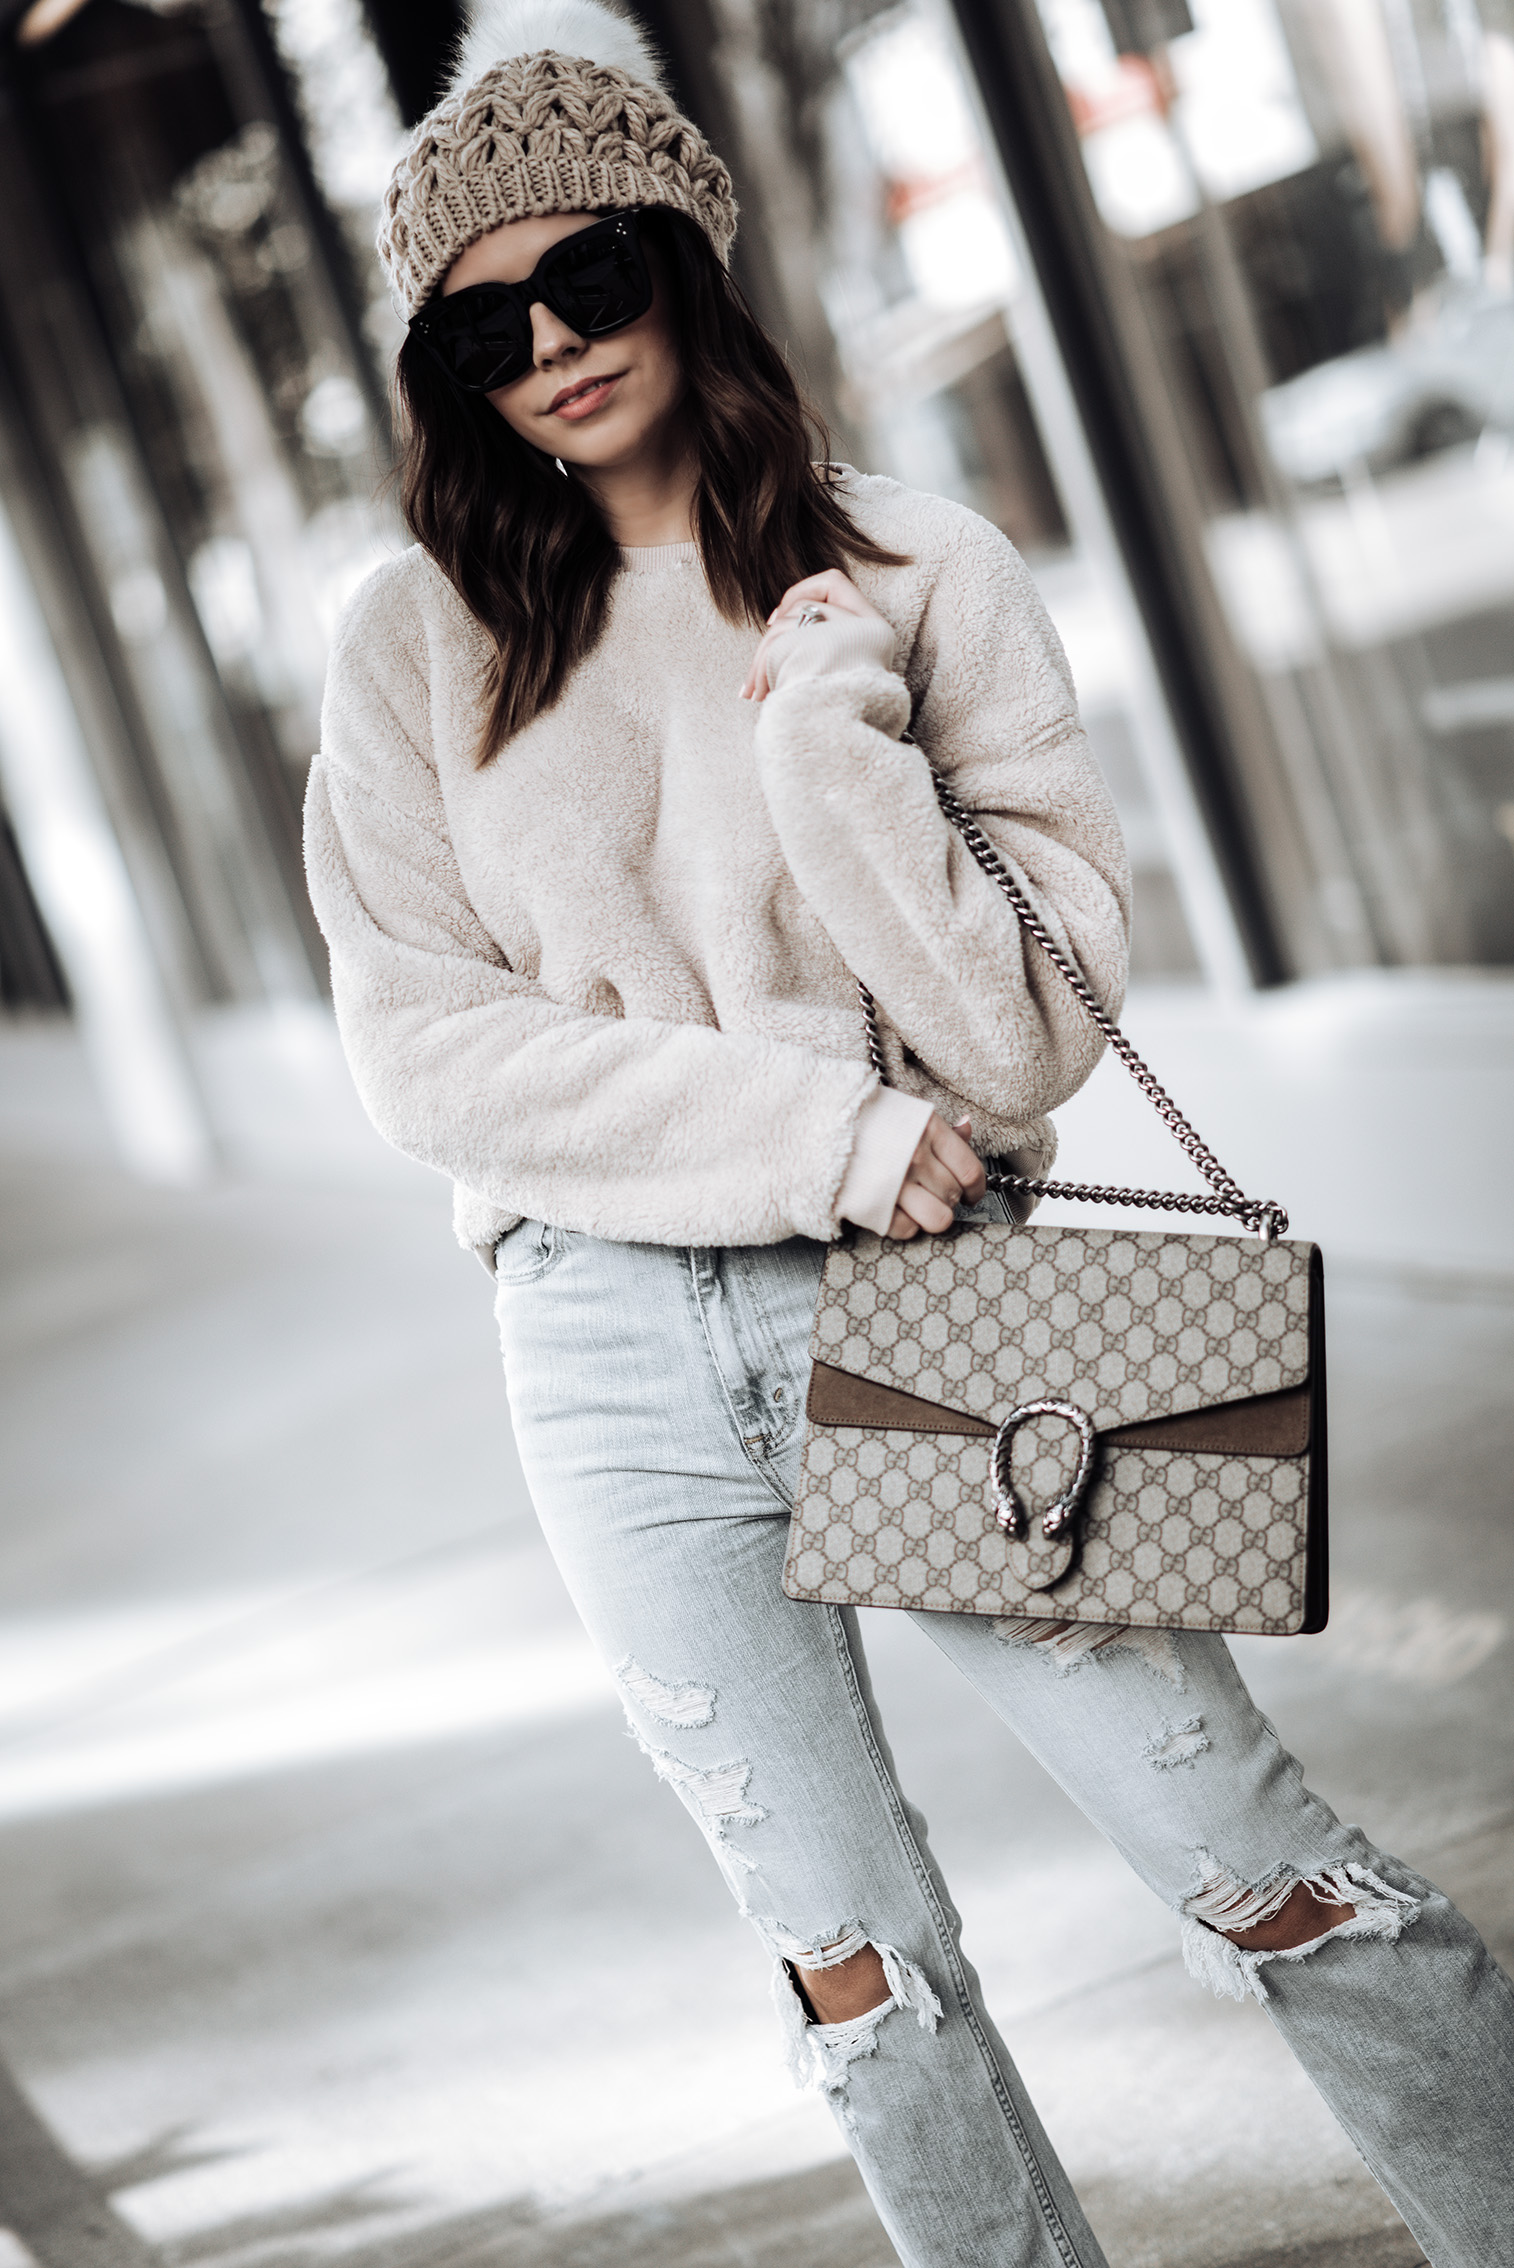 Fuzzy crewneck Sweatshirt   High Rise Ankle Strait Jeans   Kinzey Ankle Boots   Beanie (similar)   Large Gucci Dionysus Bag   Celine Glasses   #falloutfits #beanieoutfits #guccibagoutfits #casualoutfitideas Cozy outfits